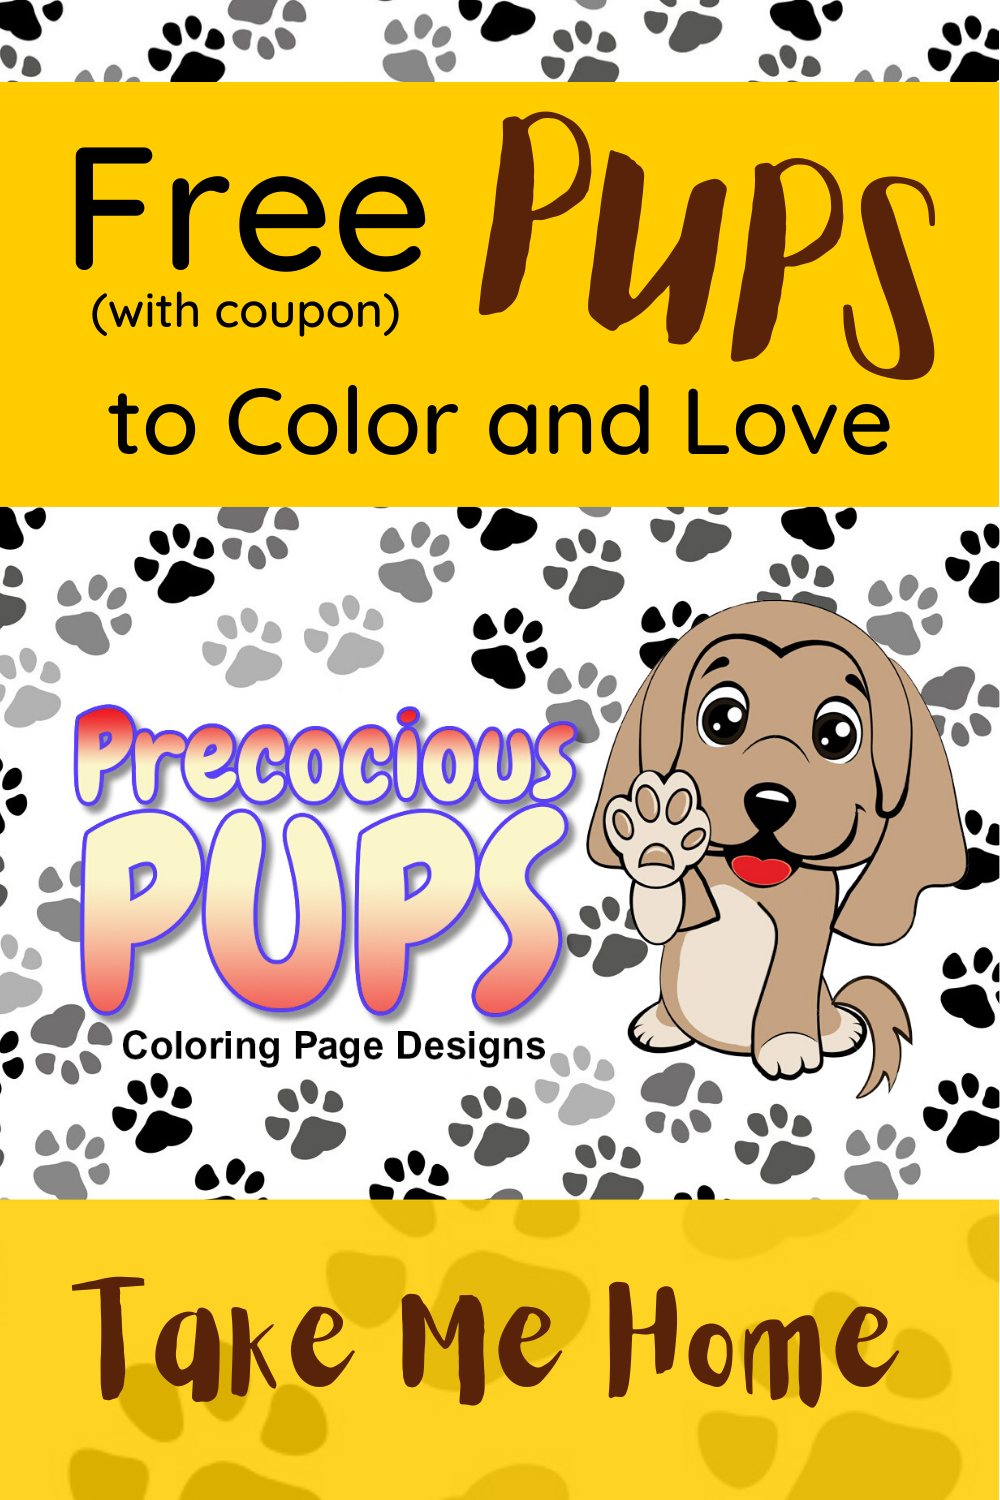 Use Coupon Code Ppups To Get 10 Coloring Pages Free Puppy Coloring Pages Coloring Pages Free Puppies